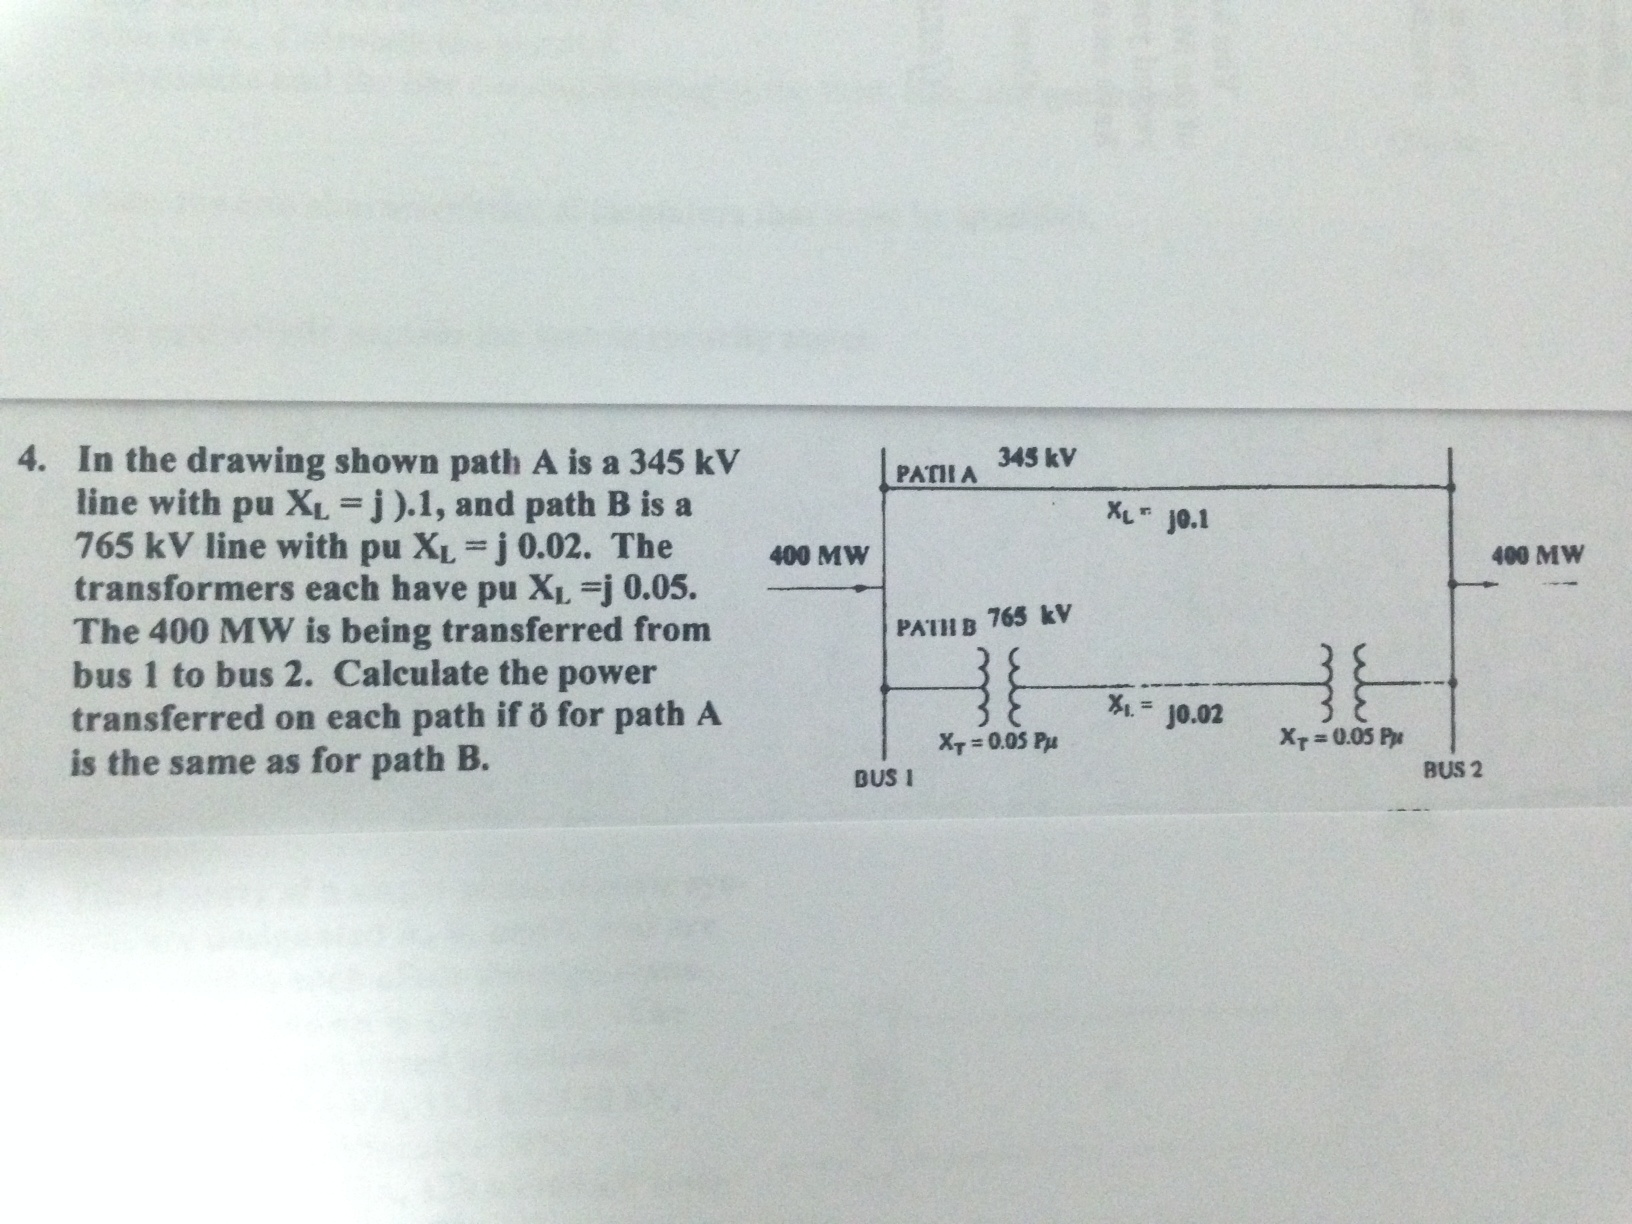 In the drawing shown path A is a 345 kV line with